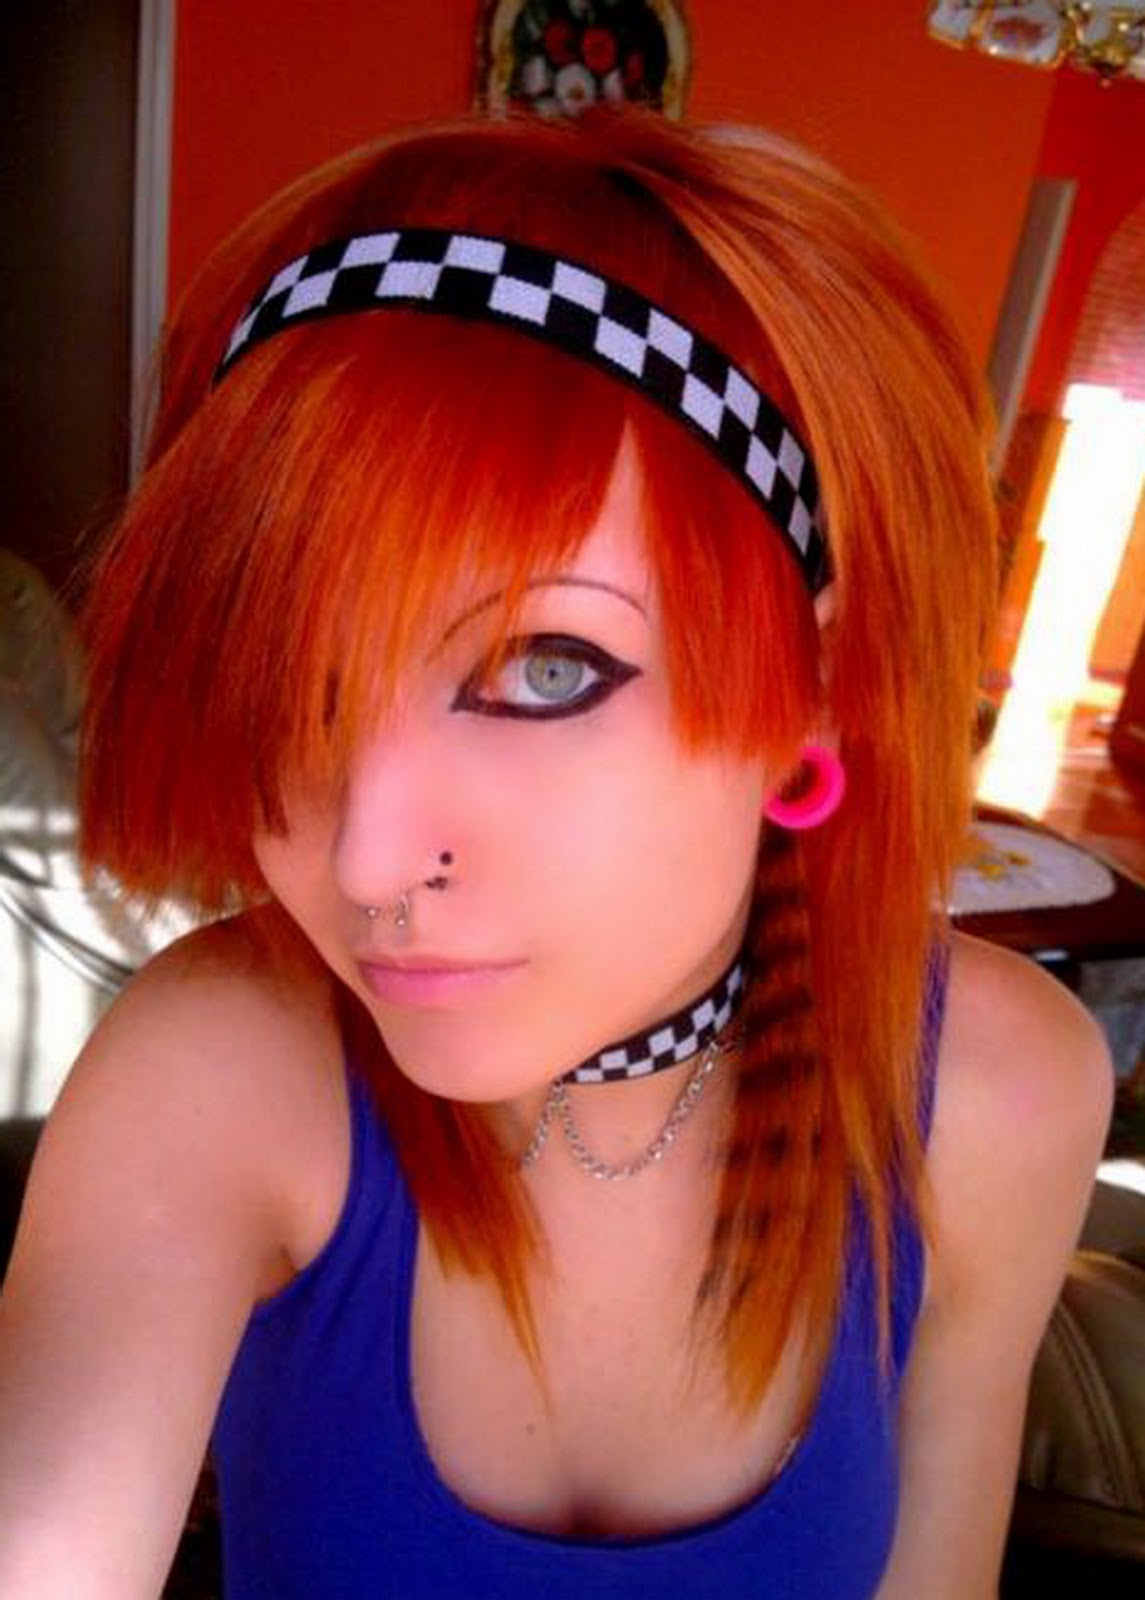 new emo, new model, trend hairs, girls and boys: Emo girls